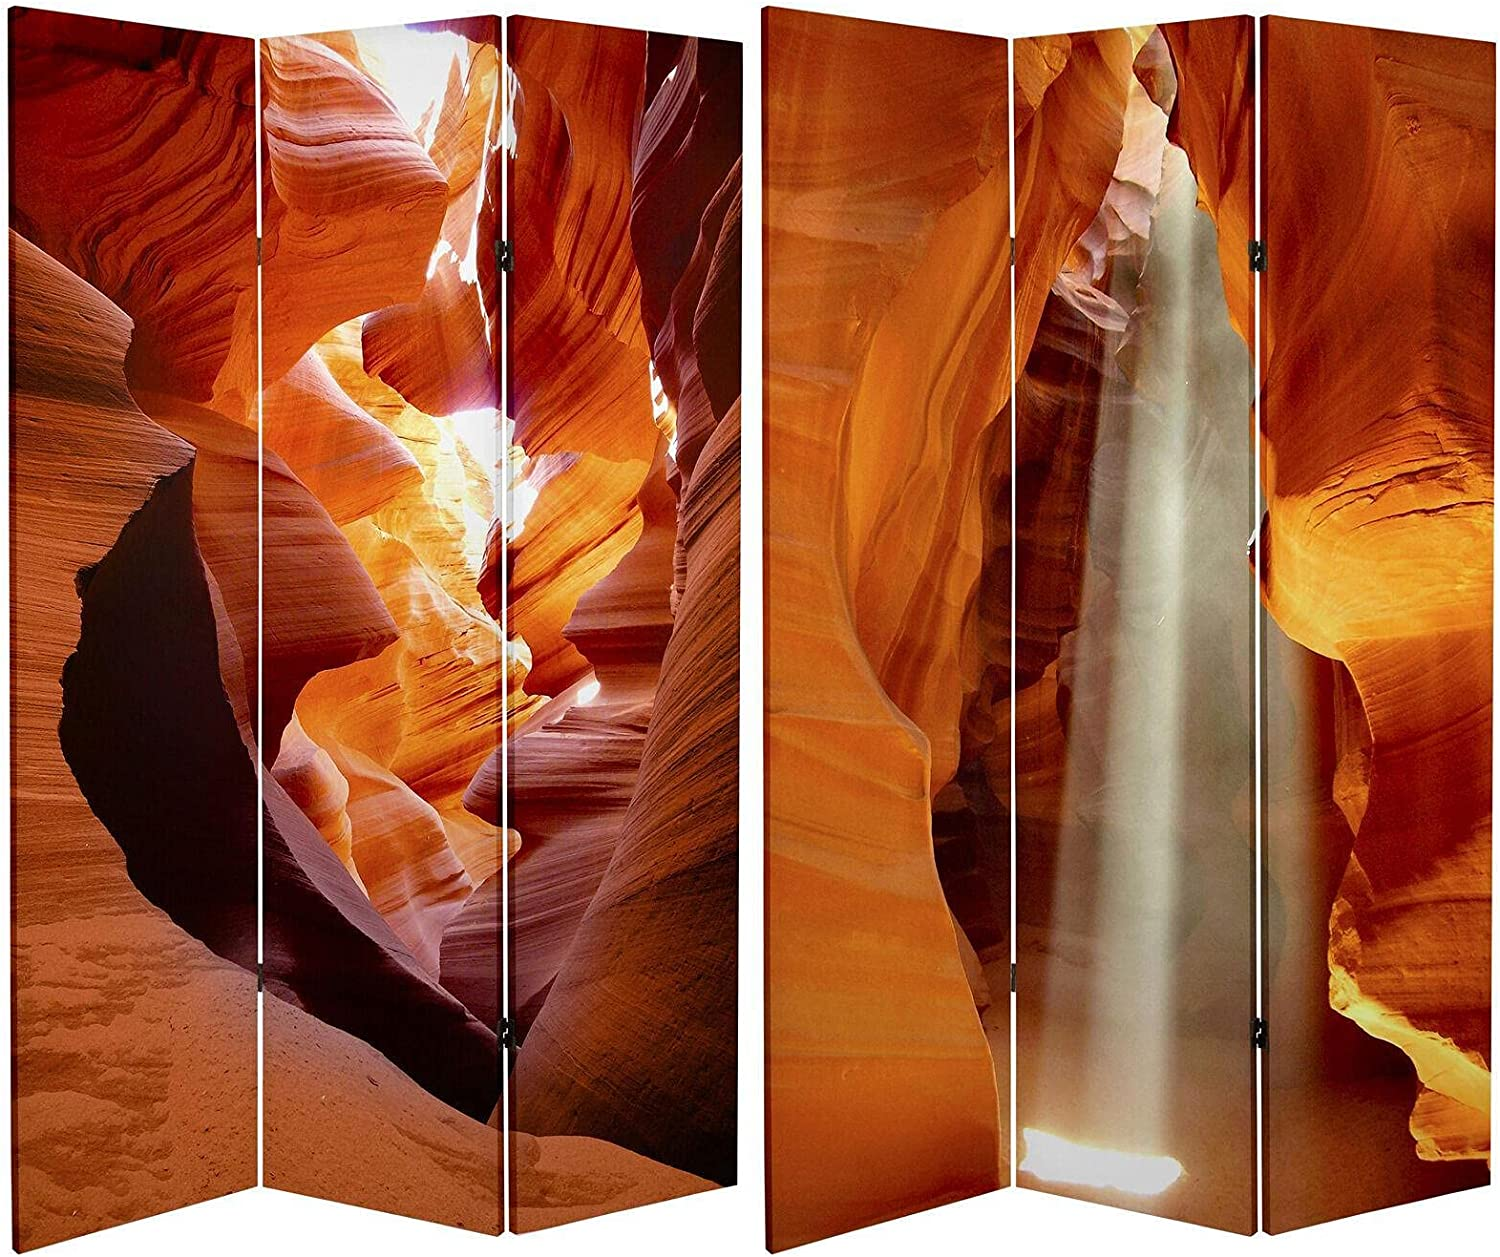 6 ft. Tall Double Sided Painted Divider Desert Room Canvas Home Large-scale sale Time sale